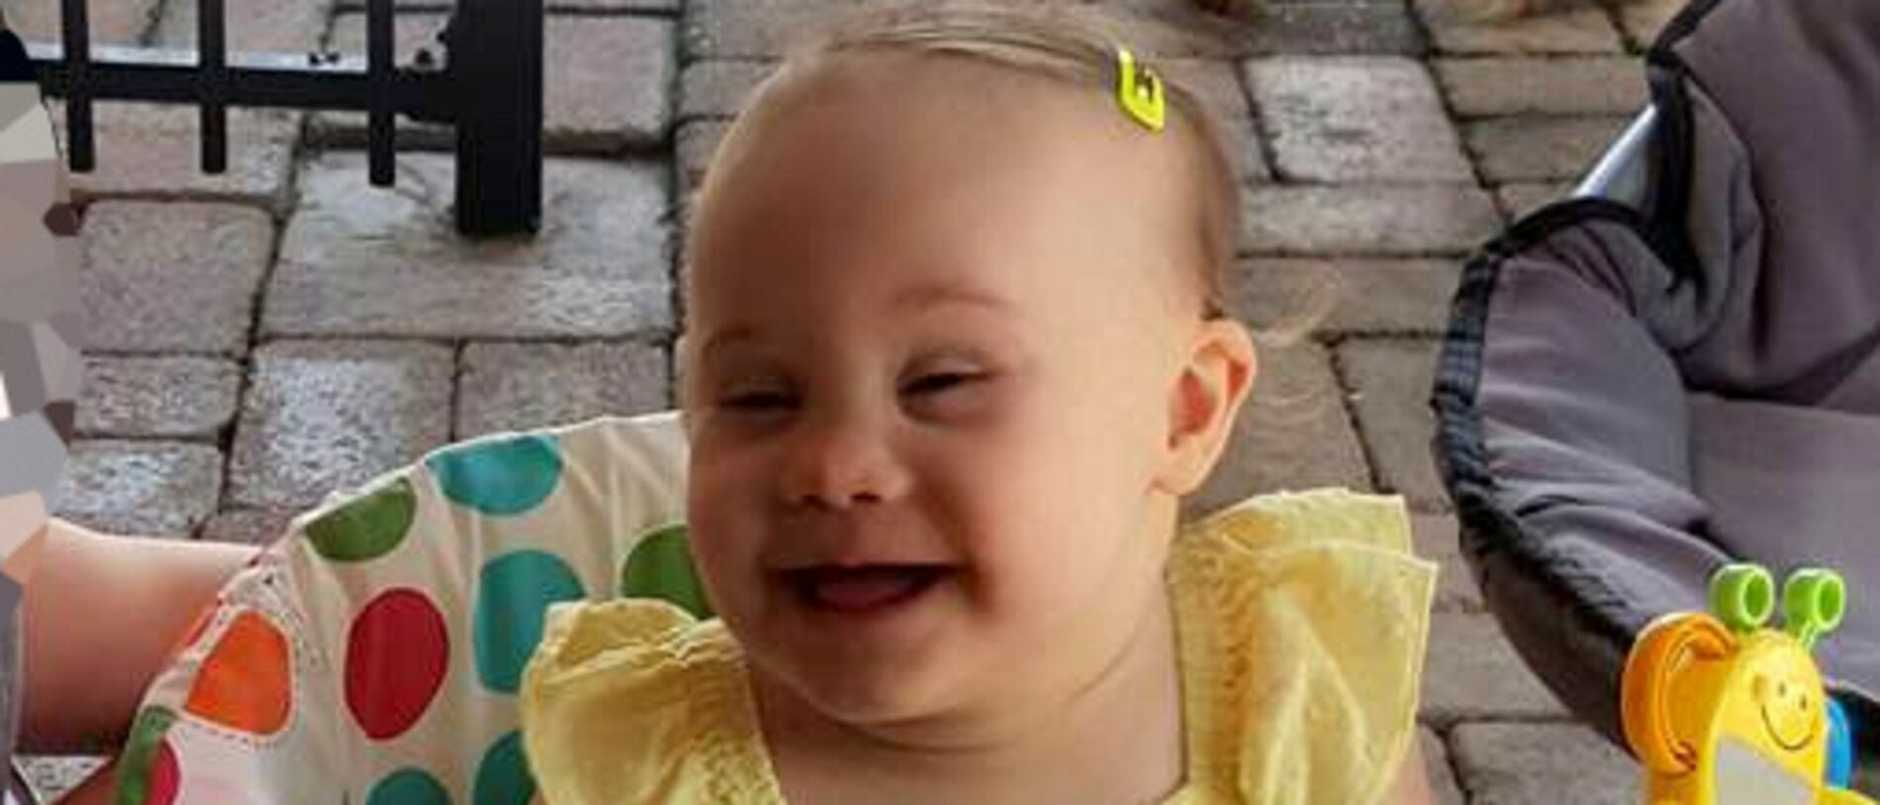 The horrific discovery of Willow Dunn's severely malnourished body will haunt usually resilient first responders for many years, a top detective has revealed.